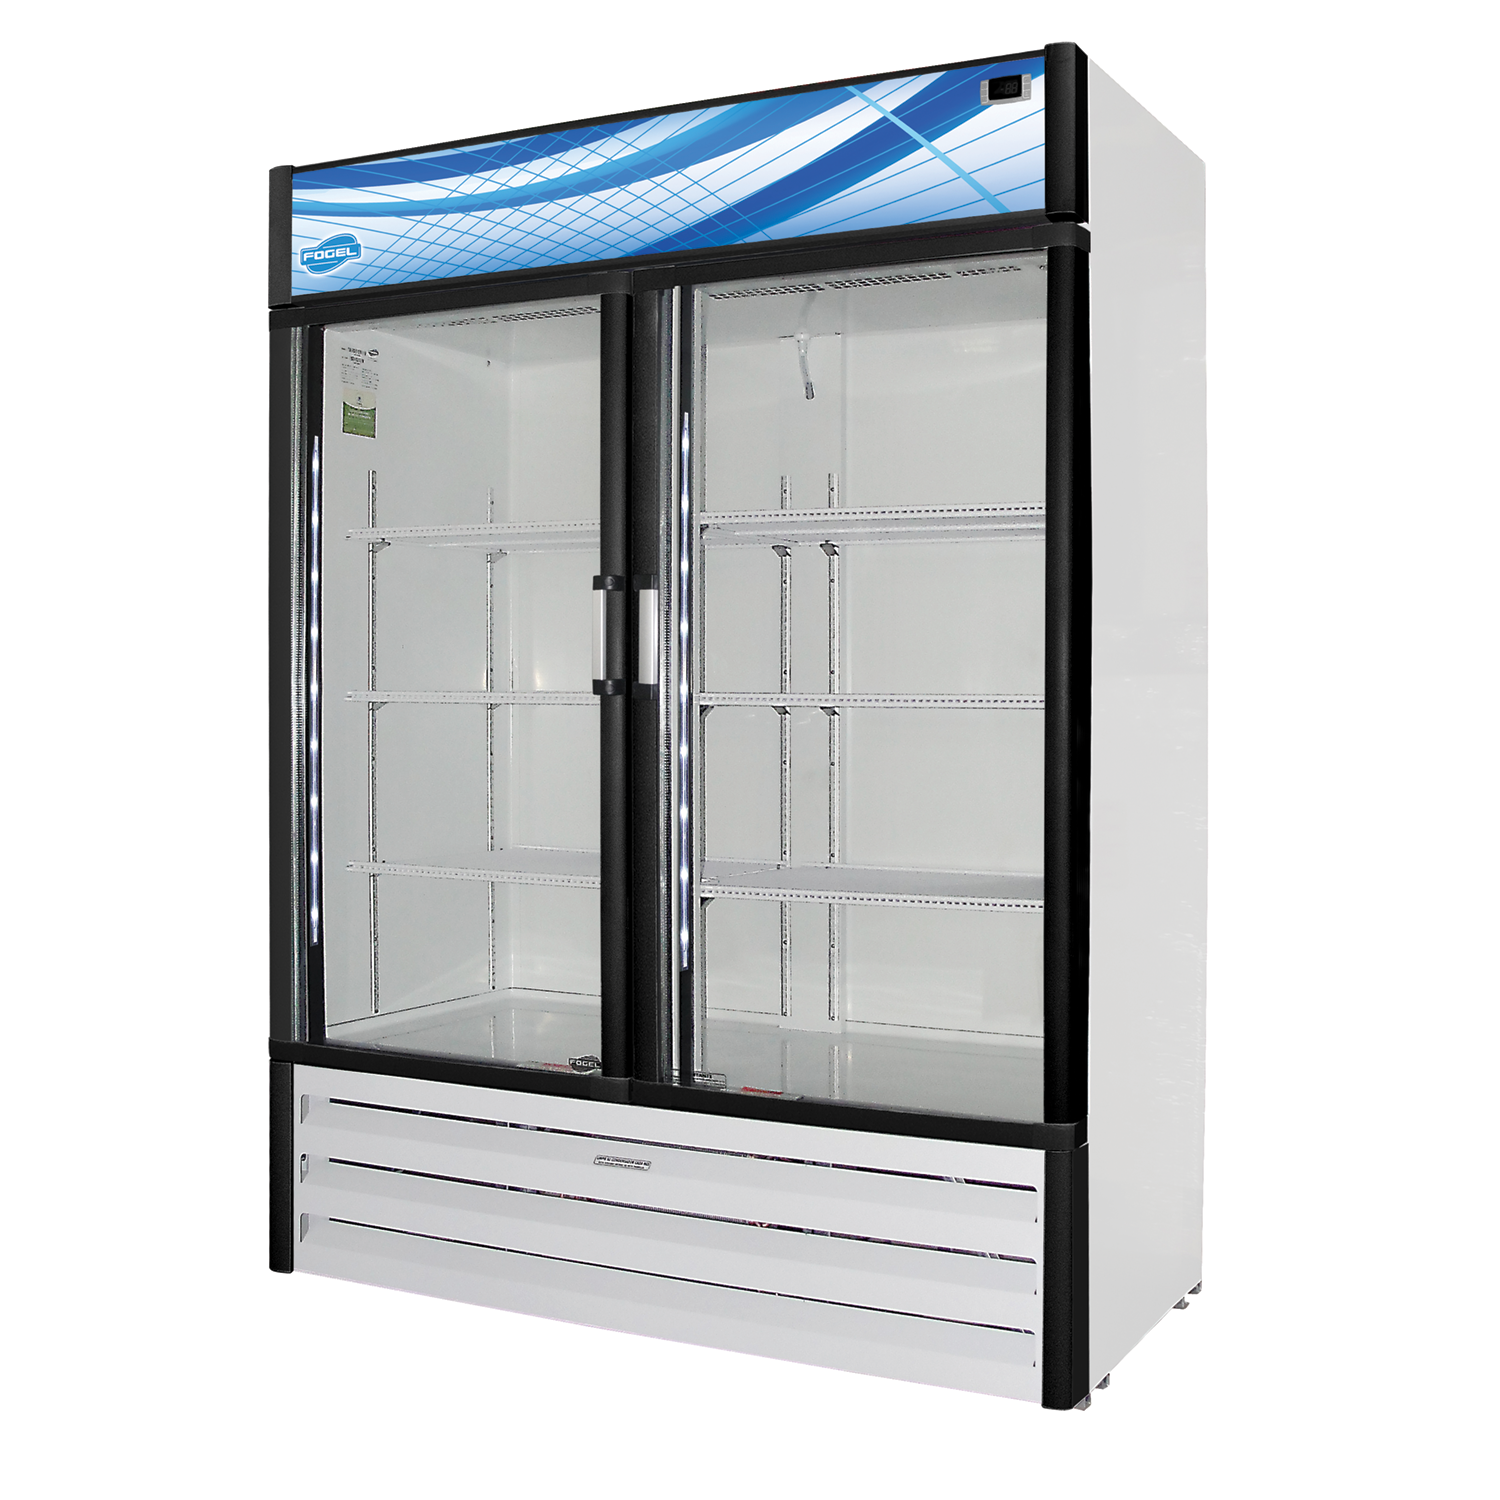 Fogel USA VR-35-RE-HC refrigerator, merchandiser